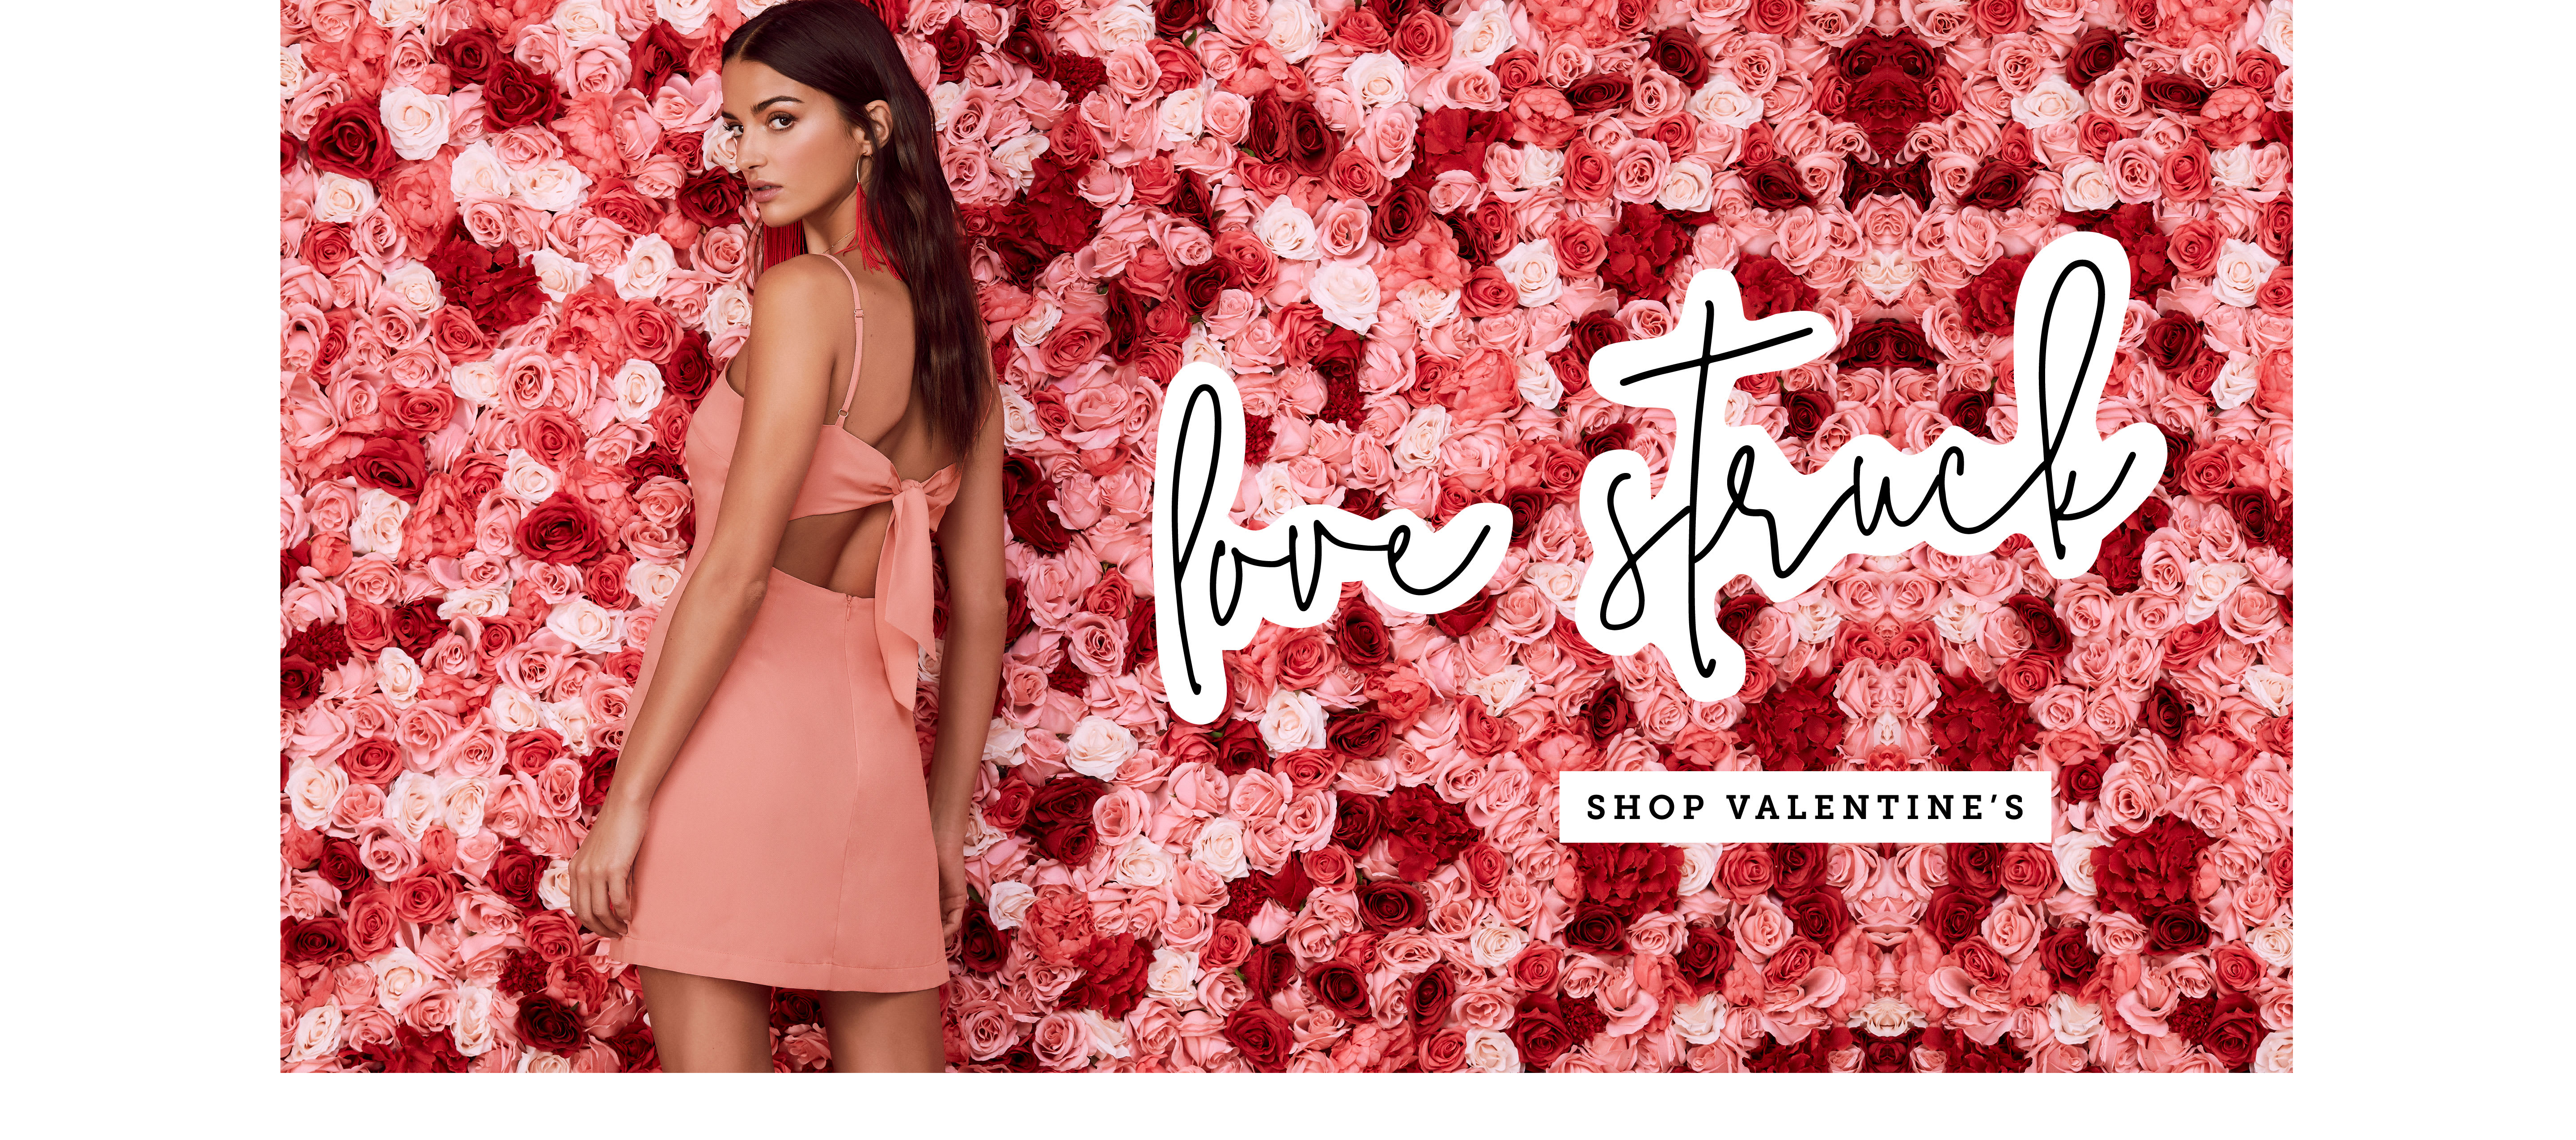 Shop Valentine's Day Dresses for Women.